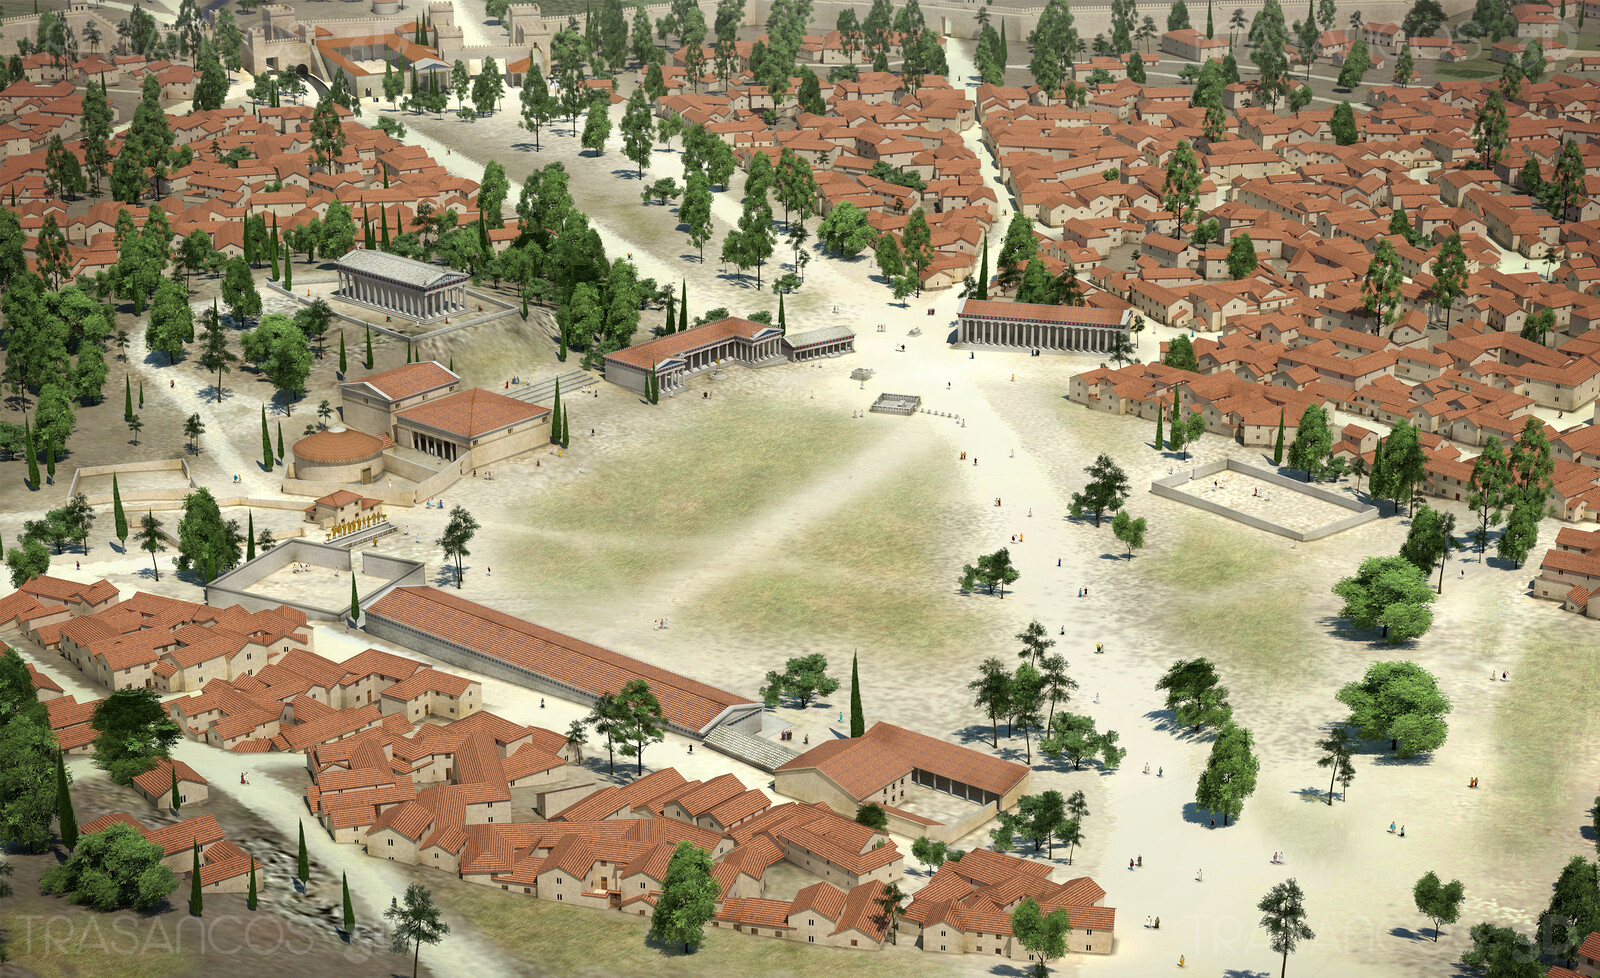 View over the ancient Agora of Athens. Modeled in collaboration with: - Andrés Armesto - Diego Blanco